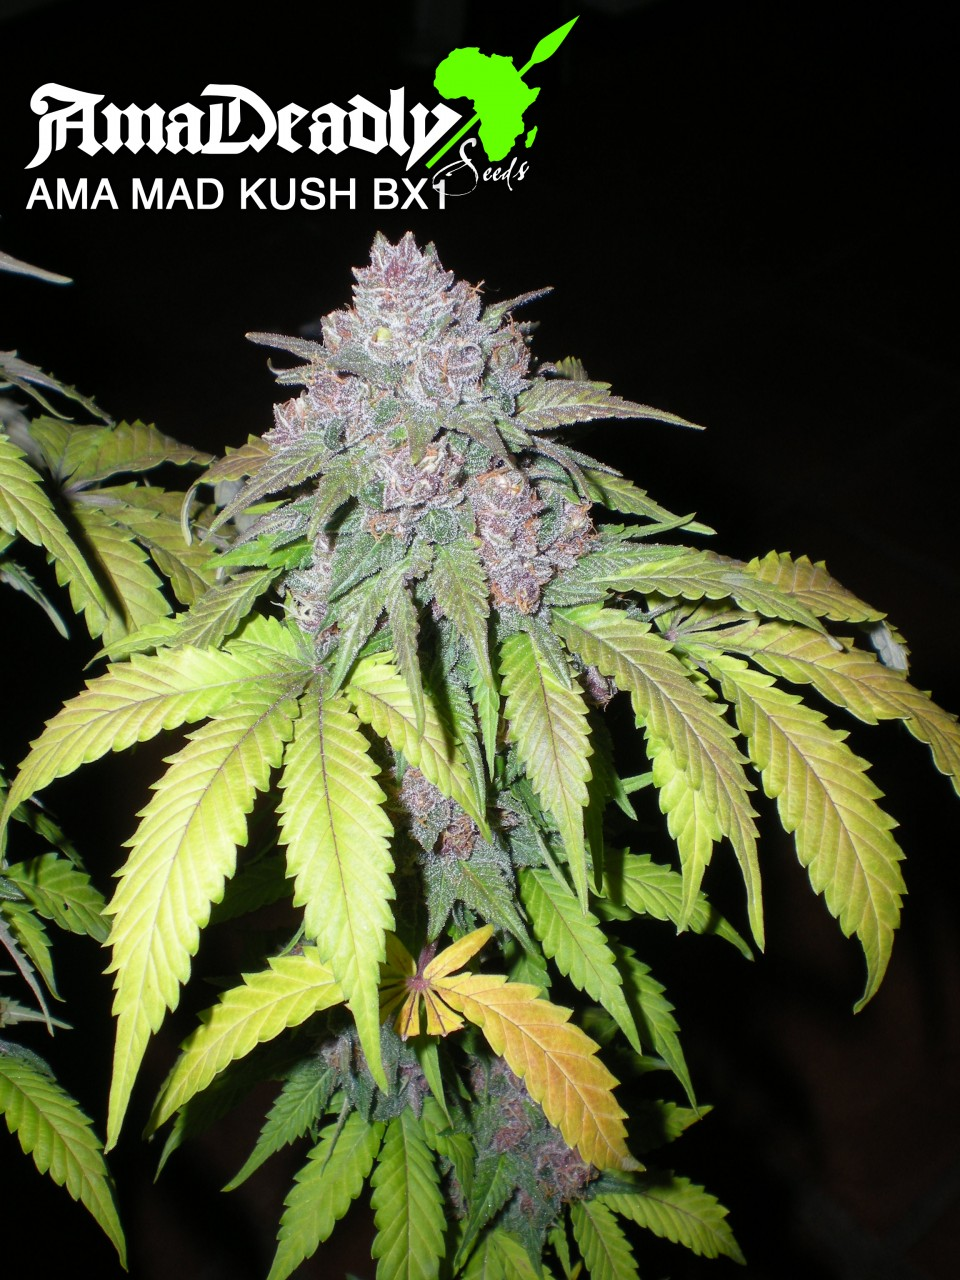 AMA MAD KUSH BX1| AmaDeadly Seeds